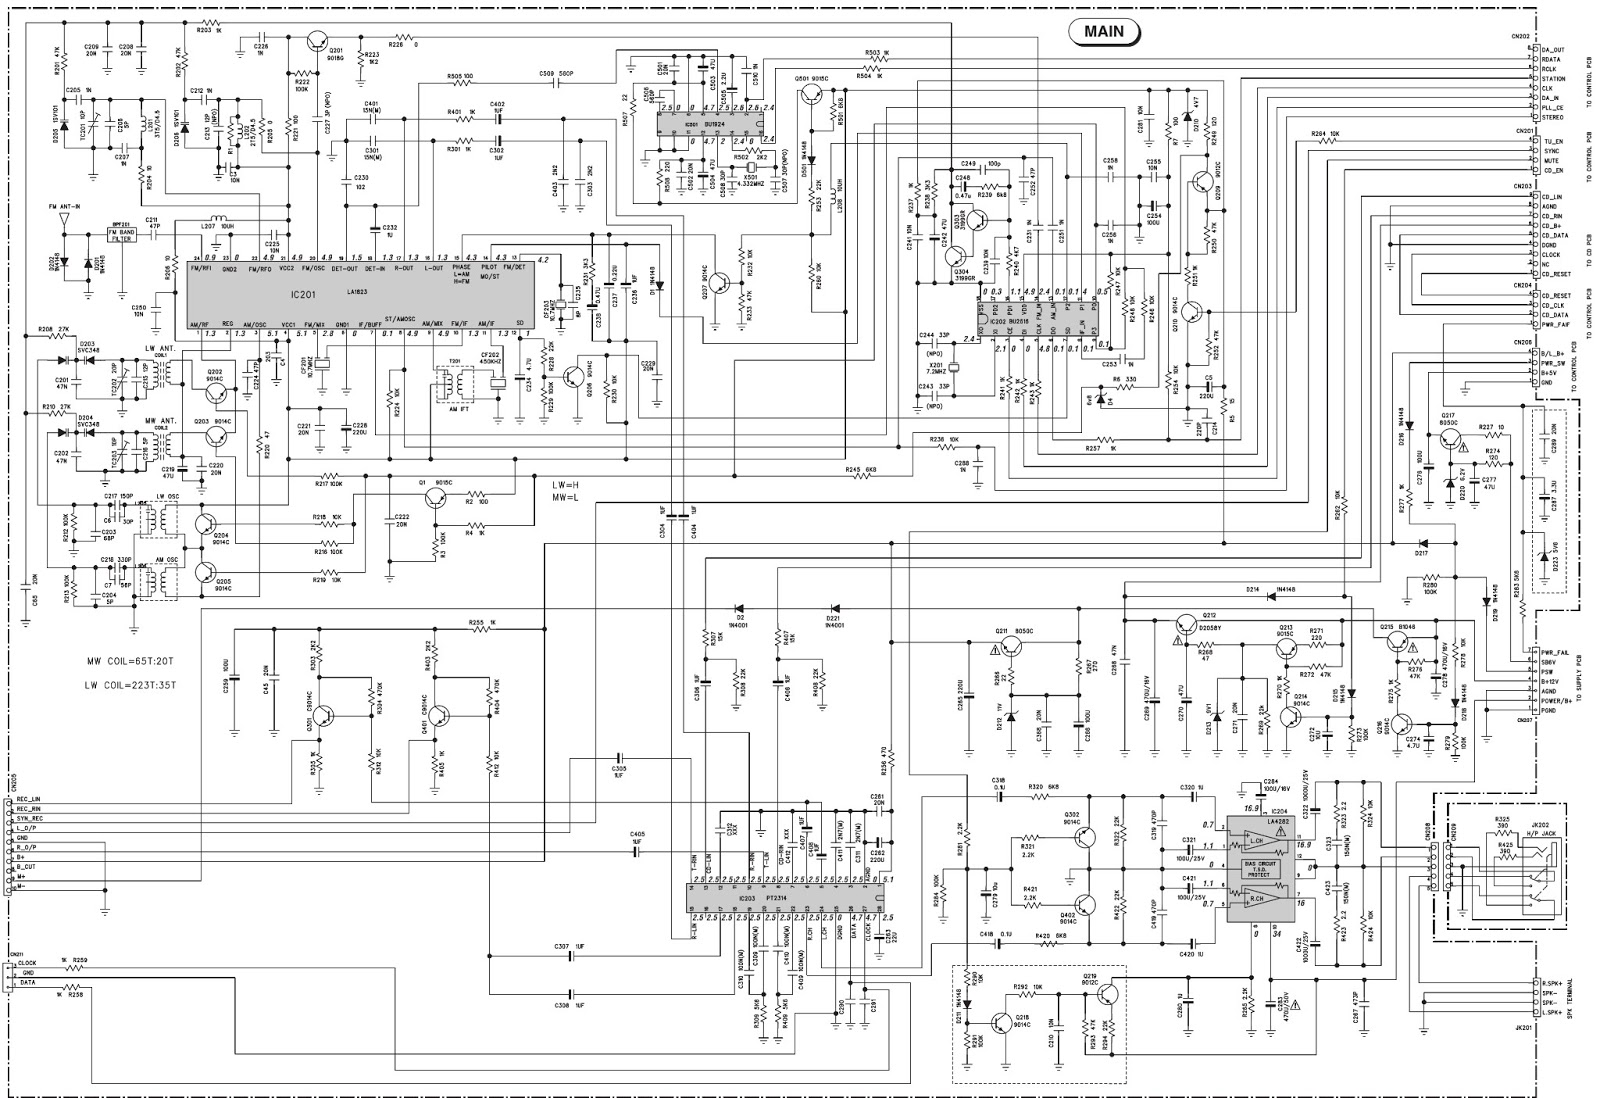 small resolution of yamaha schematic diagram 24 wiring diagram images yamaha g5 amp schematic yamaha g5 amp schematic